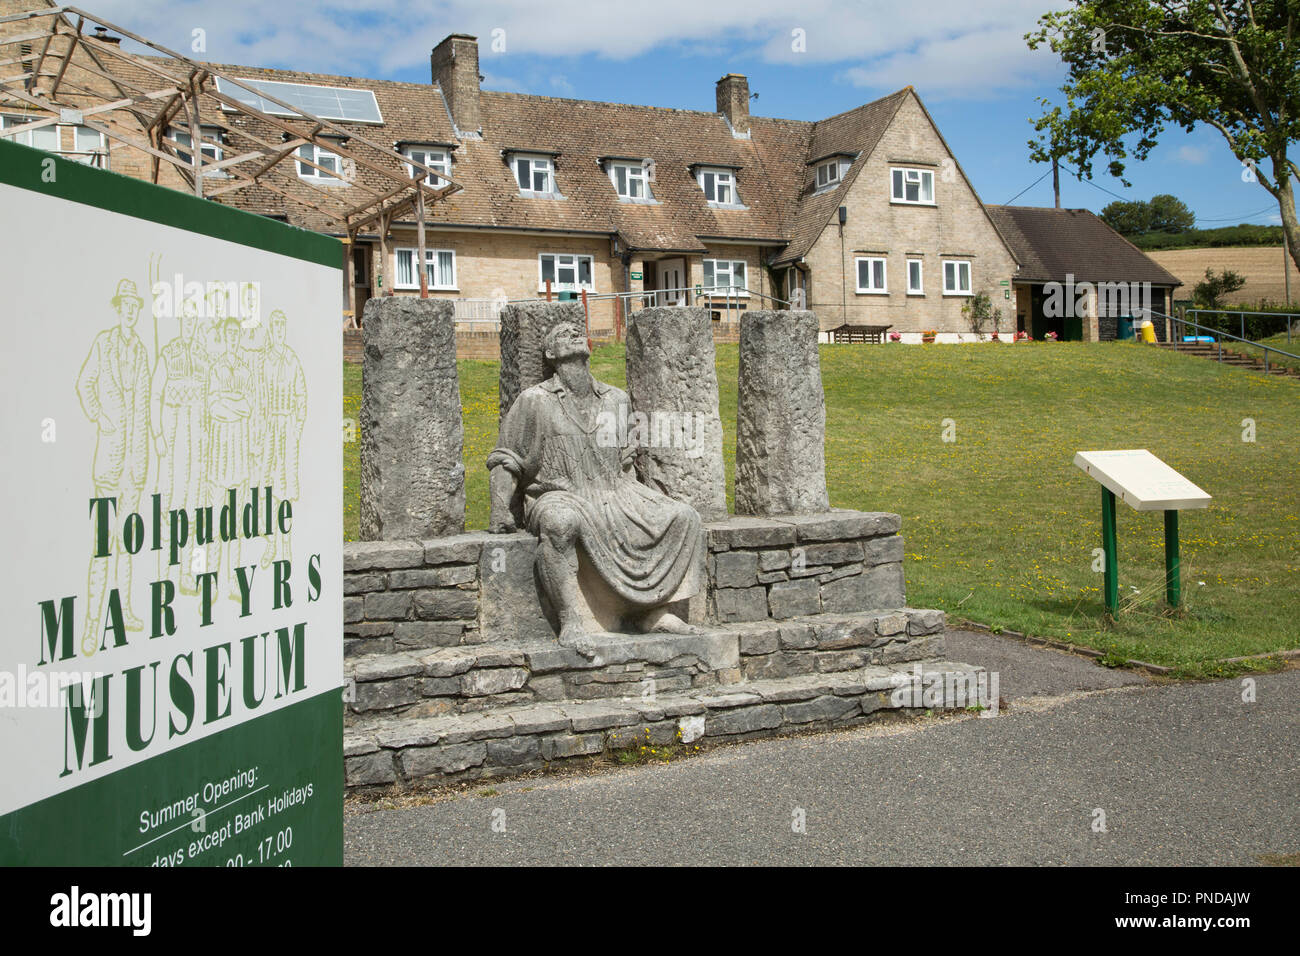 The Tolpuddle Martyrs museum. - Stock Image